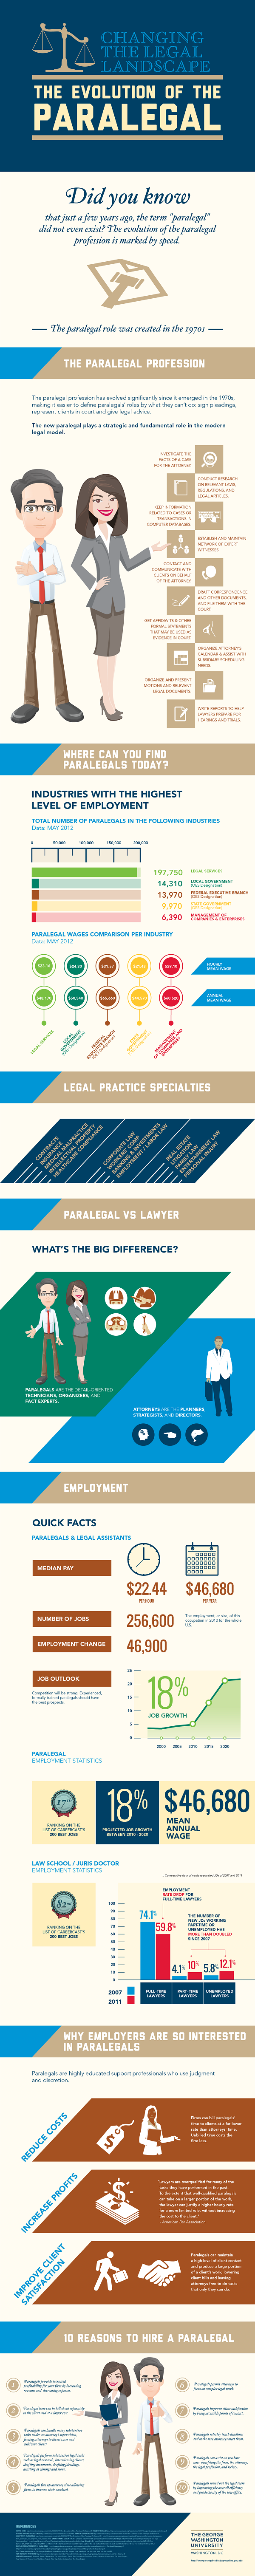 Becoming a paralegal infographic nna para infographic 01g 1betcityfo Image collections